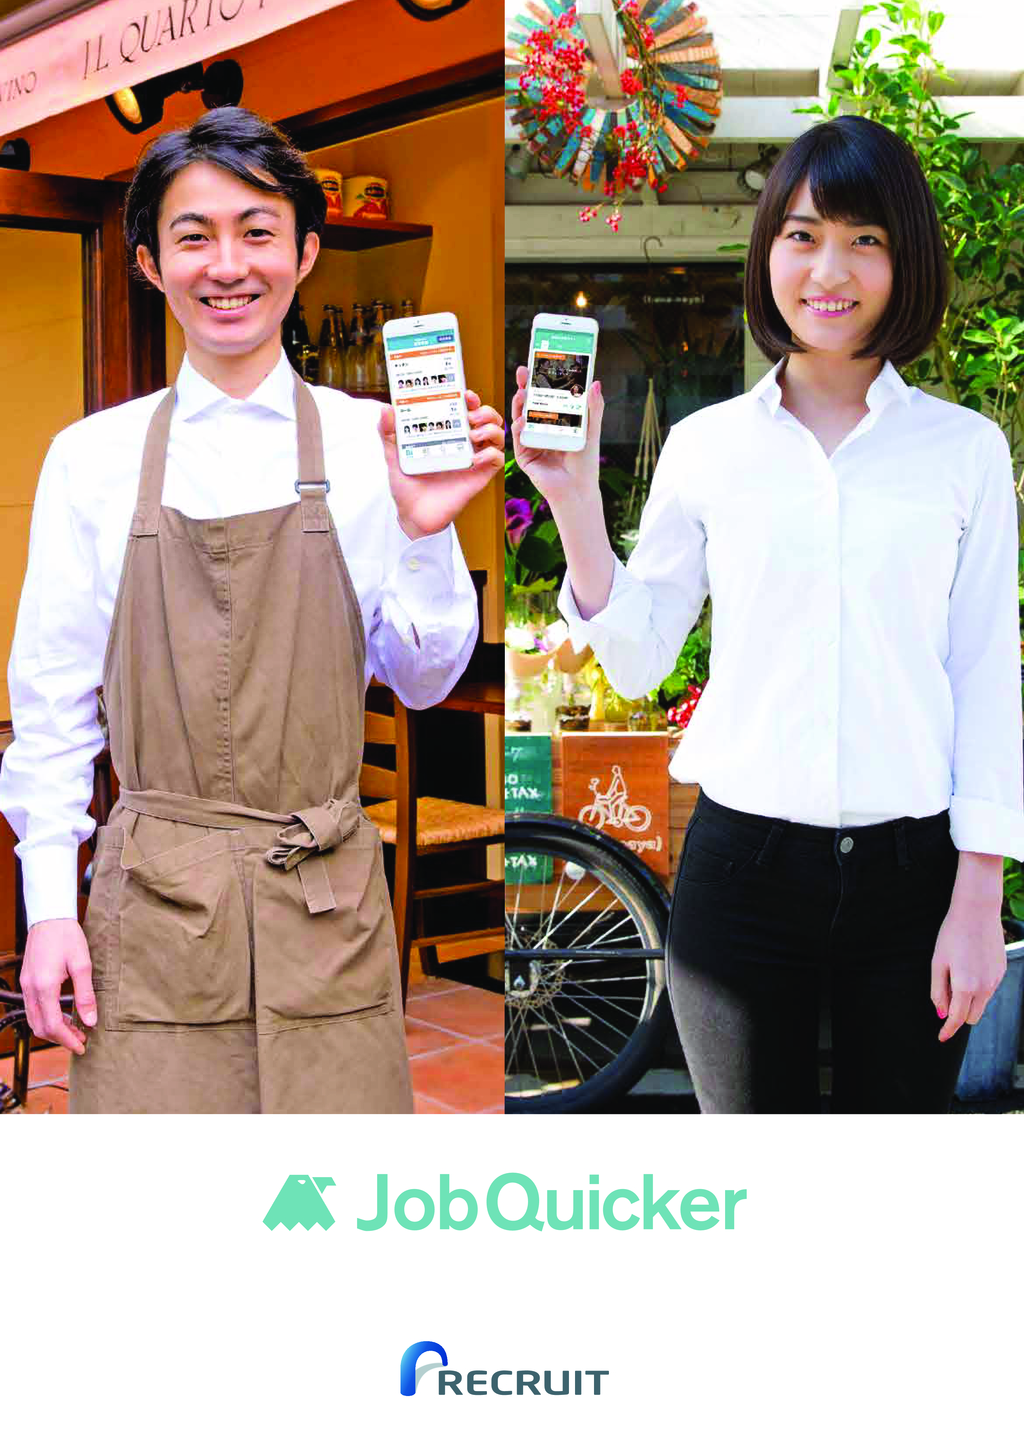 Job Quickerの資料